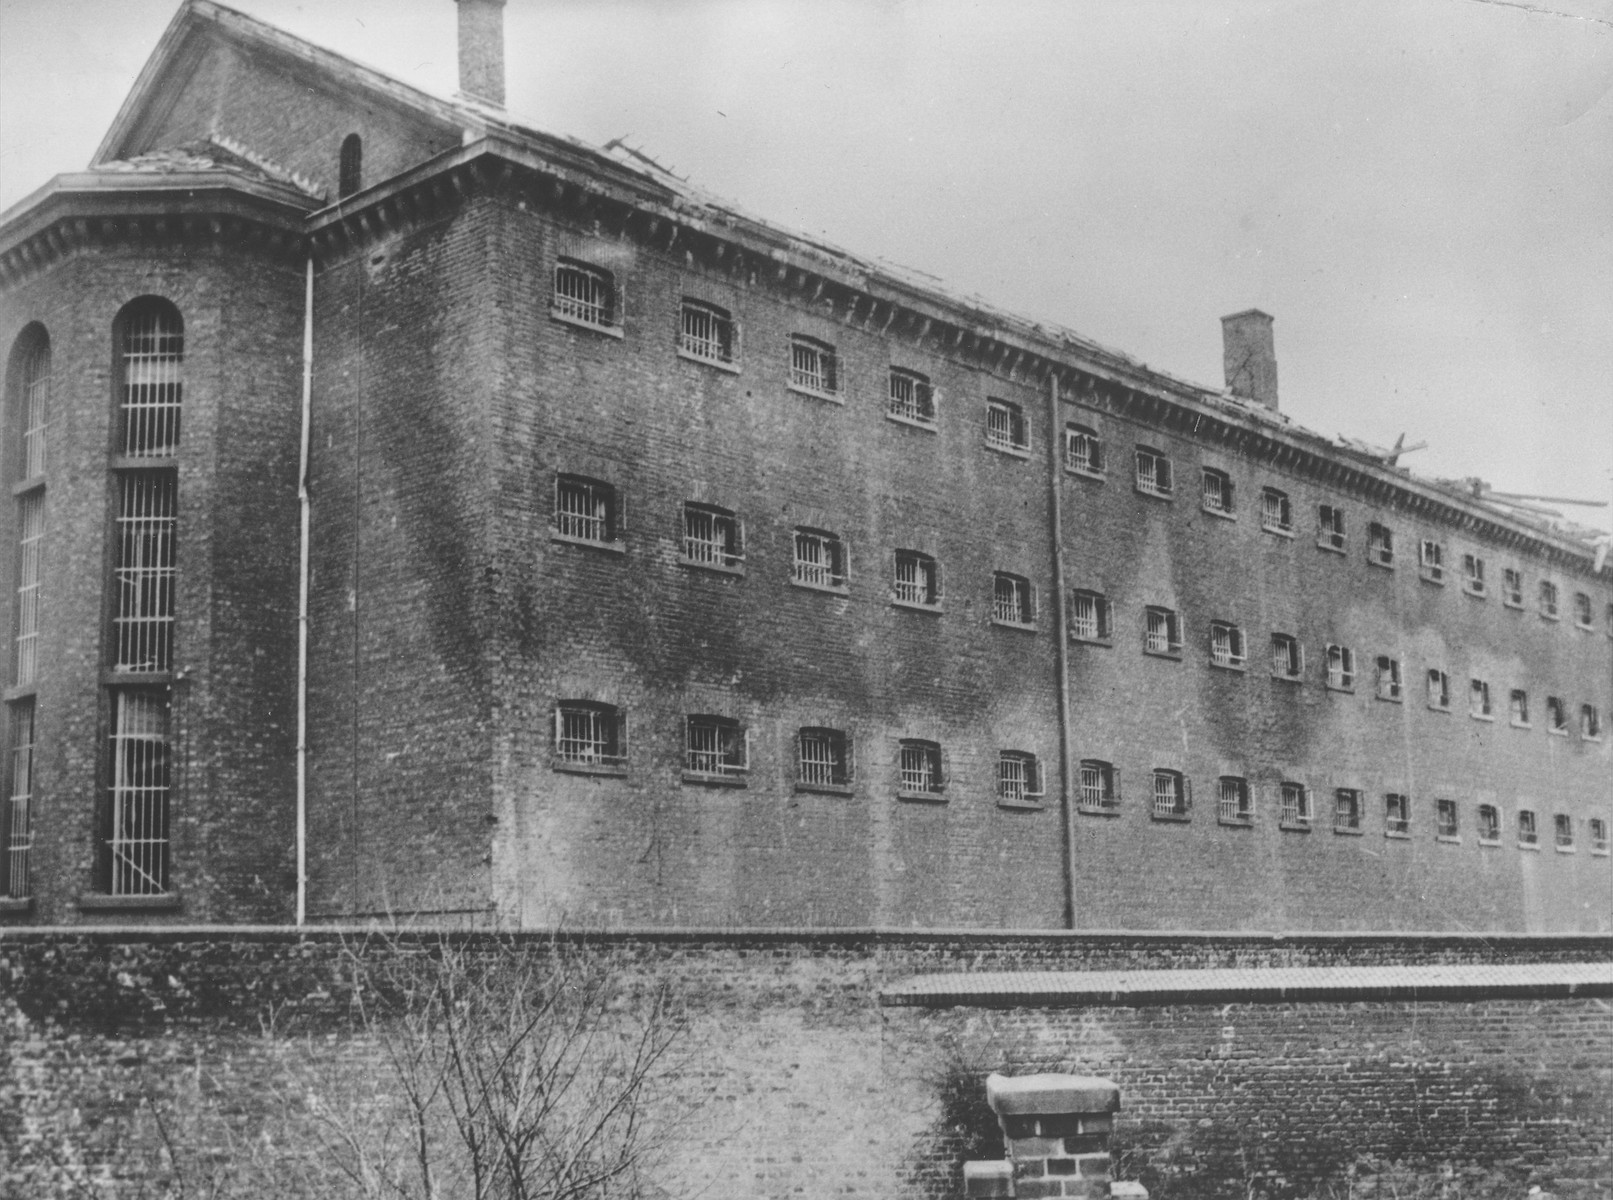 View of one wing of a Gestapo prison in Koeln.  It was the only wing of the prison that escaped bombing by Allied warplanes.  The entire building contained nearly a quarter-mile of cells.  Most of the inmates were charged with being members of the underground and with aiding or hiding Russians and Poles.  Upon the prison's capture by First U.S. Army troops on 6 March 1945, 80 prisoners remained.